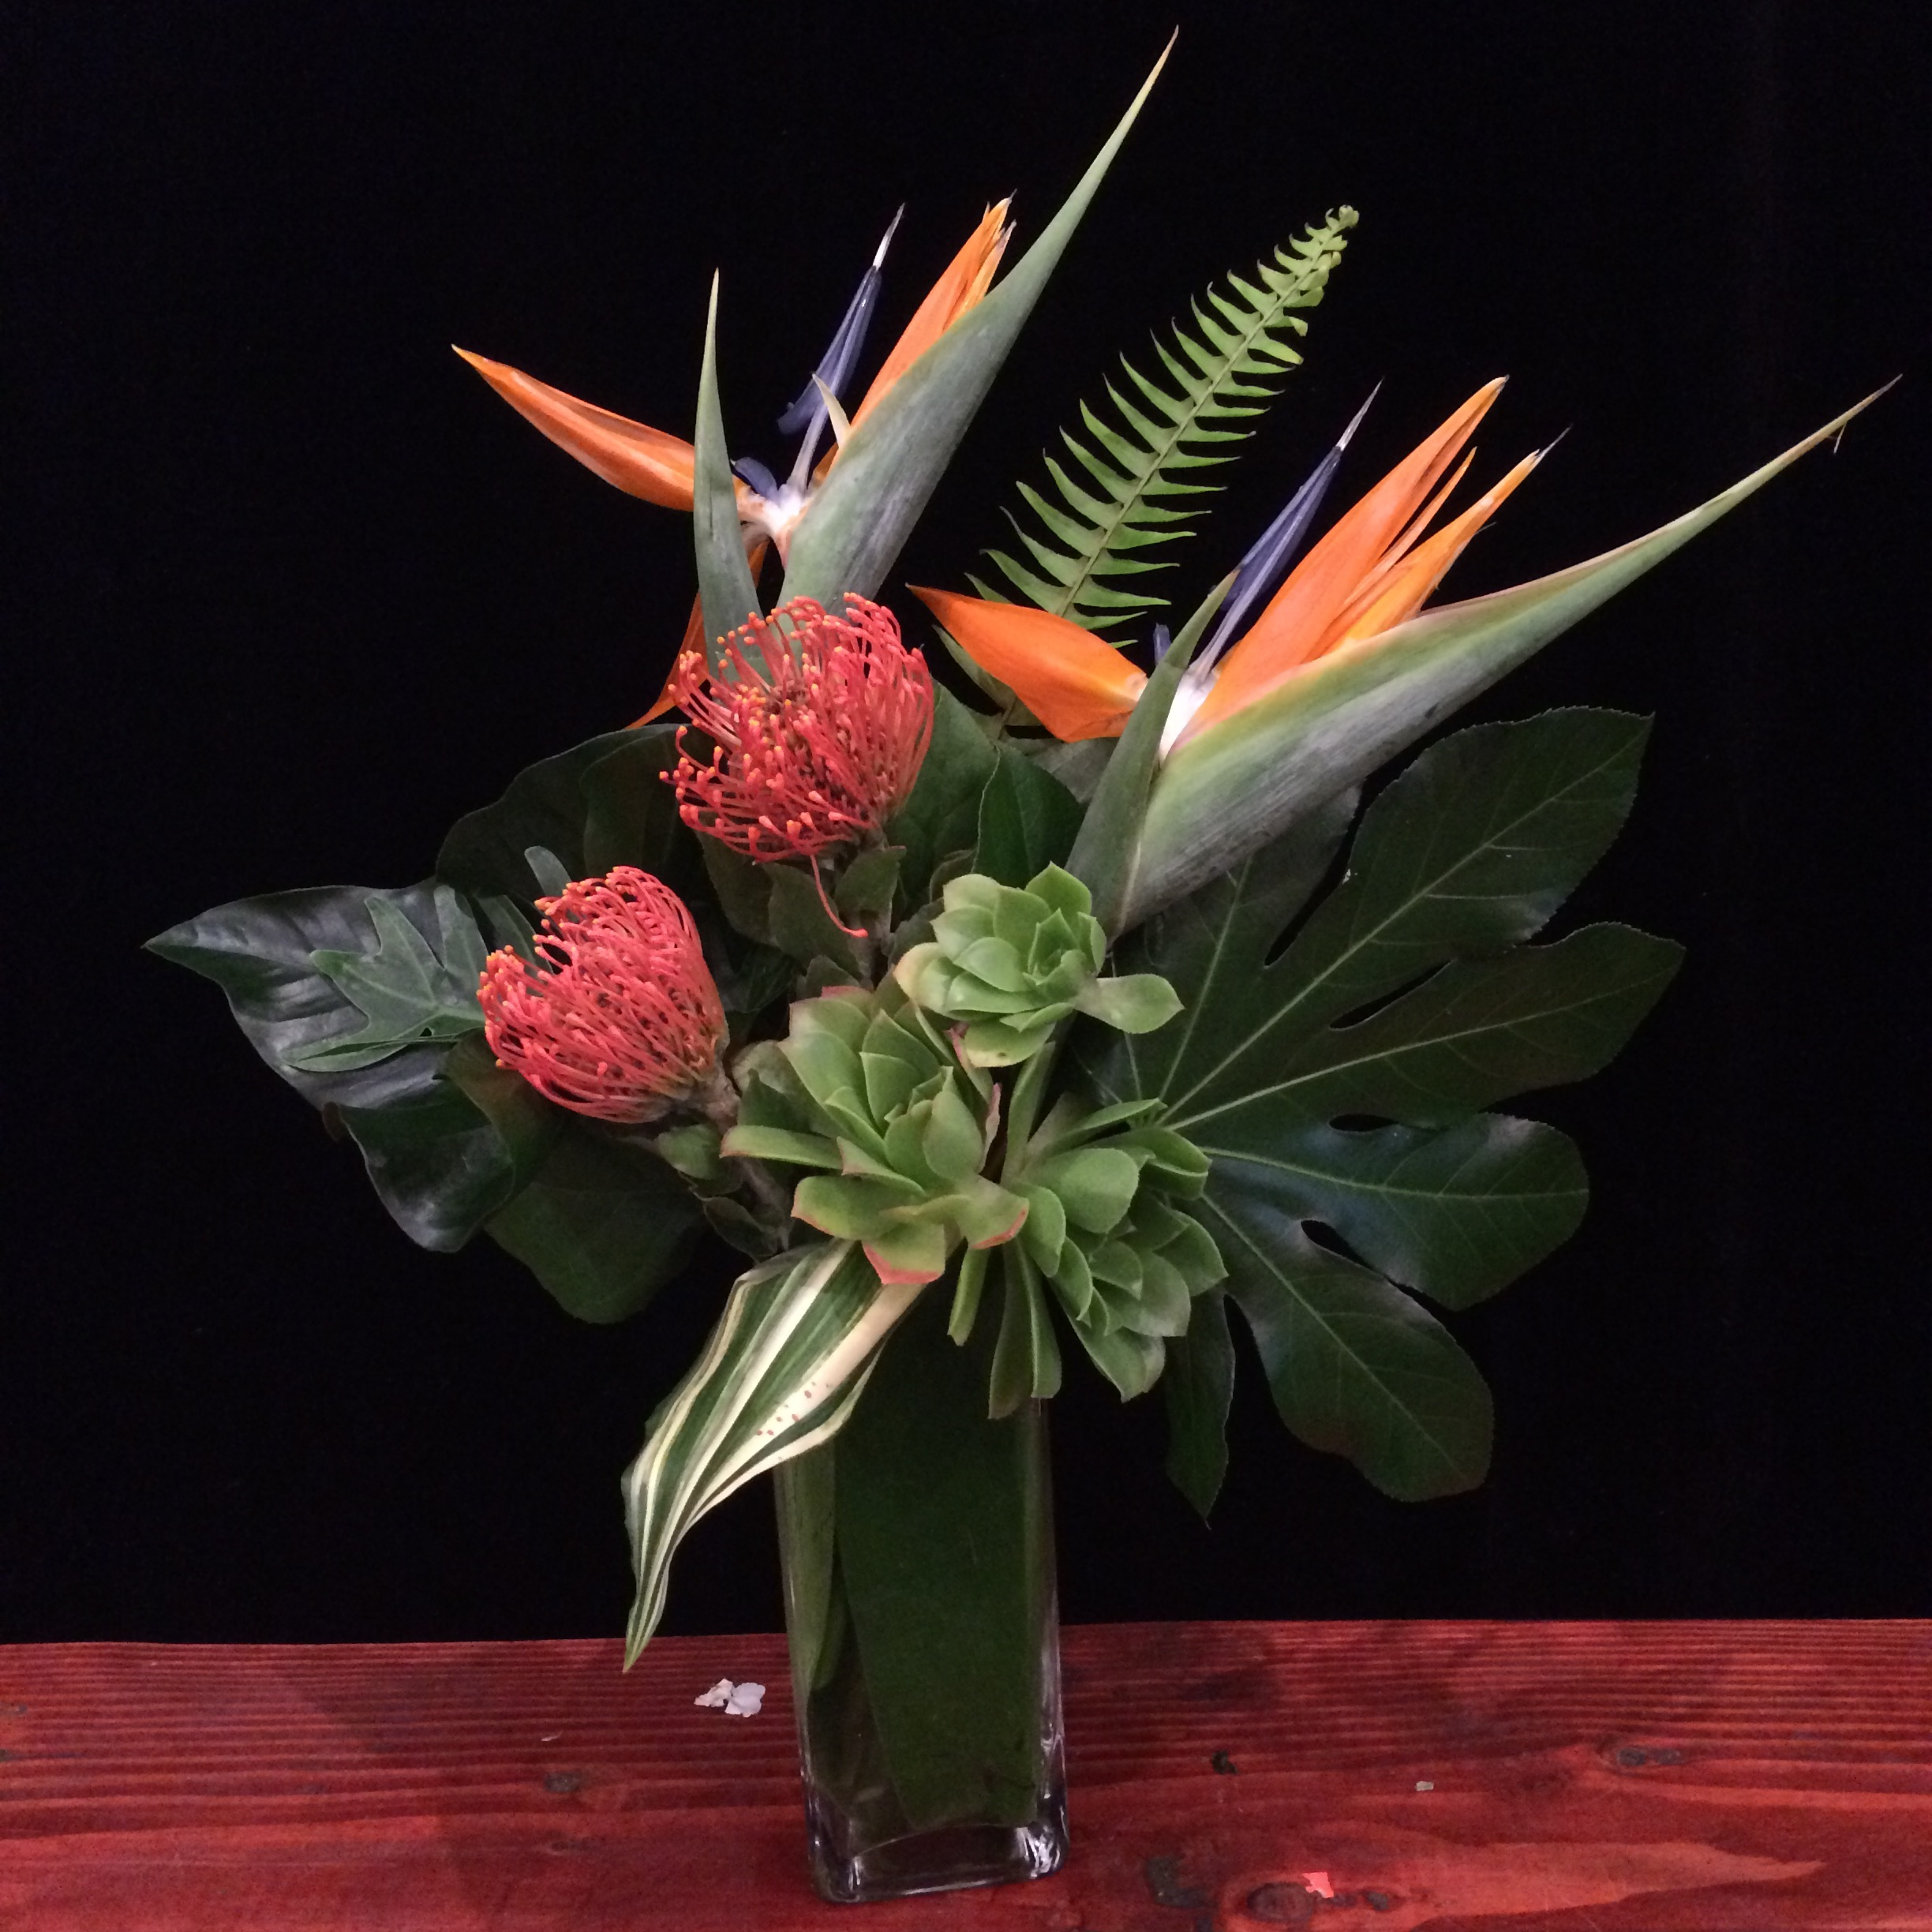 Birds of Paradise, Orange Pincushion, Green succulents with Mix Leaves